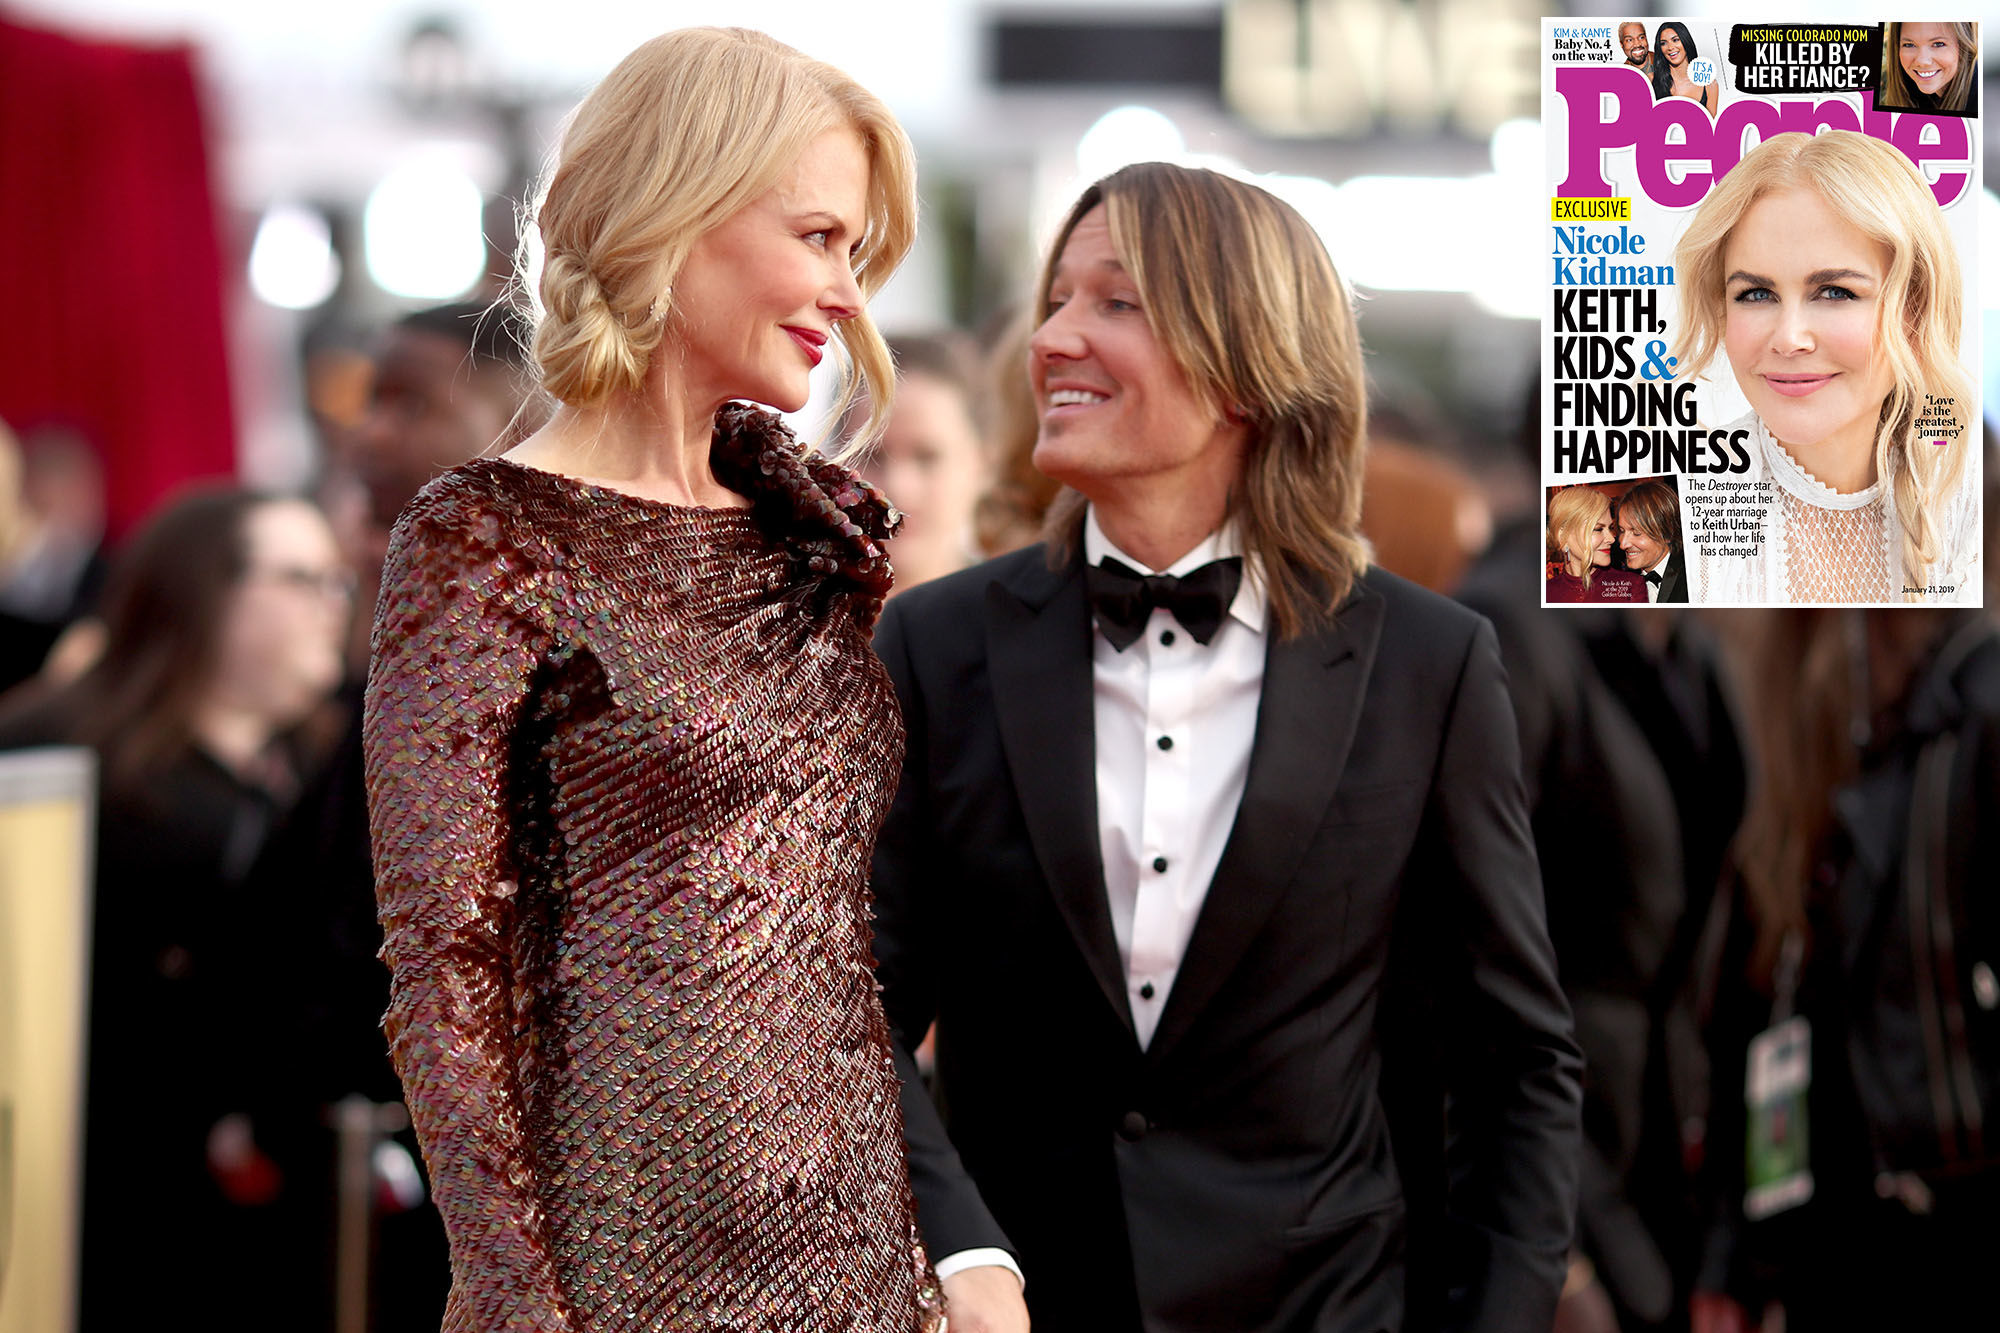 Nicole Kidman Reveals the Super-Sweet Moment She Knew Keith Urban Was 'The Love of My Life'